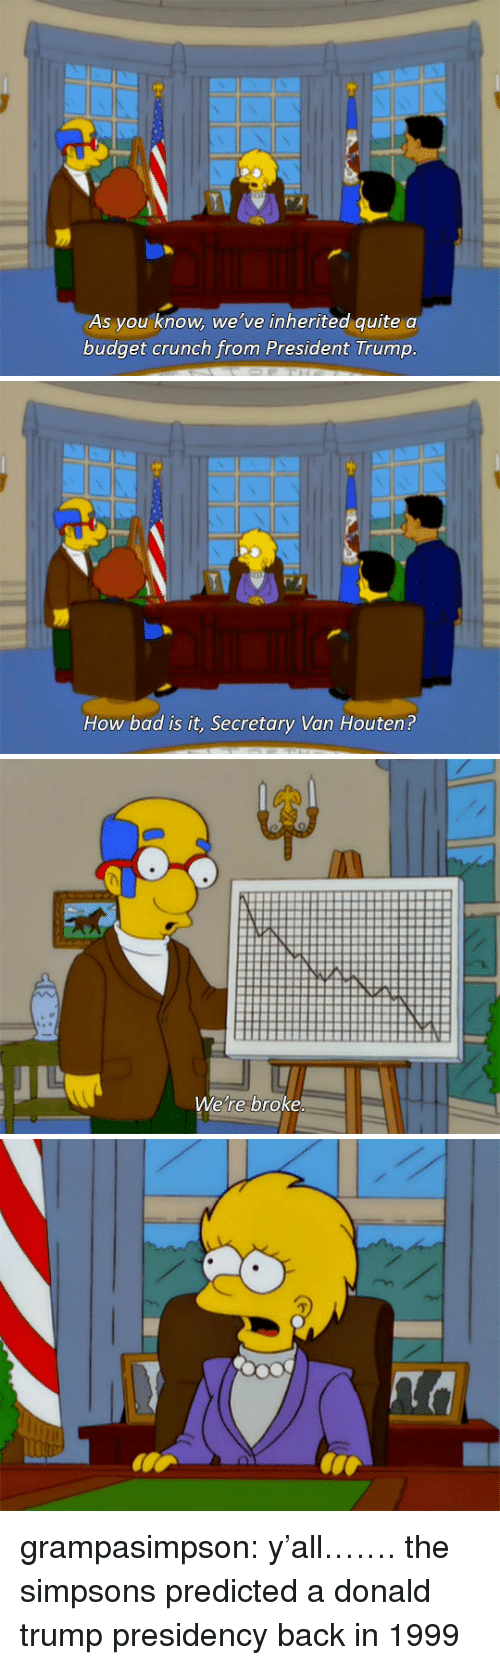 Bad, Donald Trump, and The Simpsons: As you know, we've inherited quitea  budget crunch from President Trump   How bad is it, Secretary Van Houten?   We're broke grampasimpson:  y'all……. the simpsons predicted a donald trump presidency back in 1999